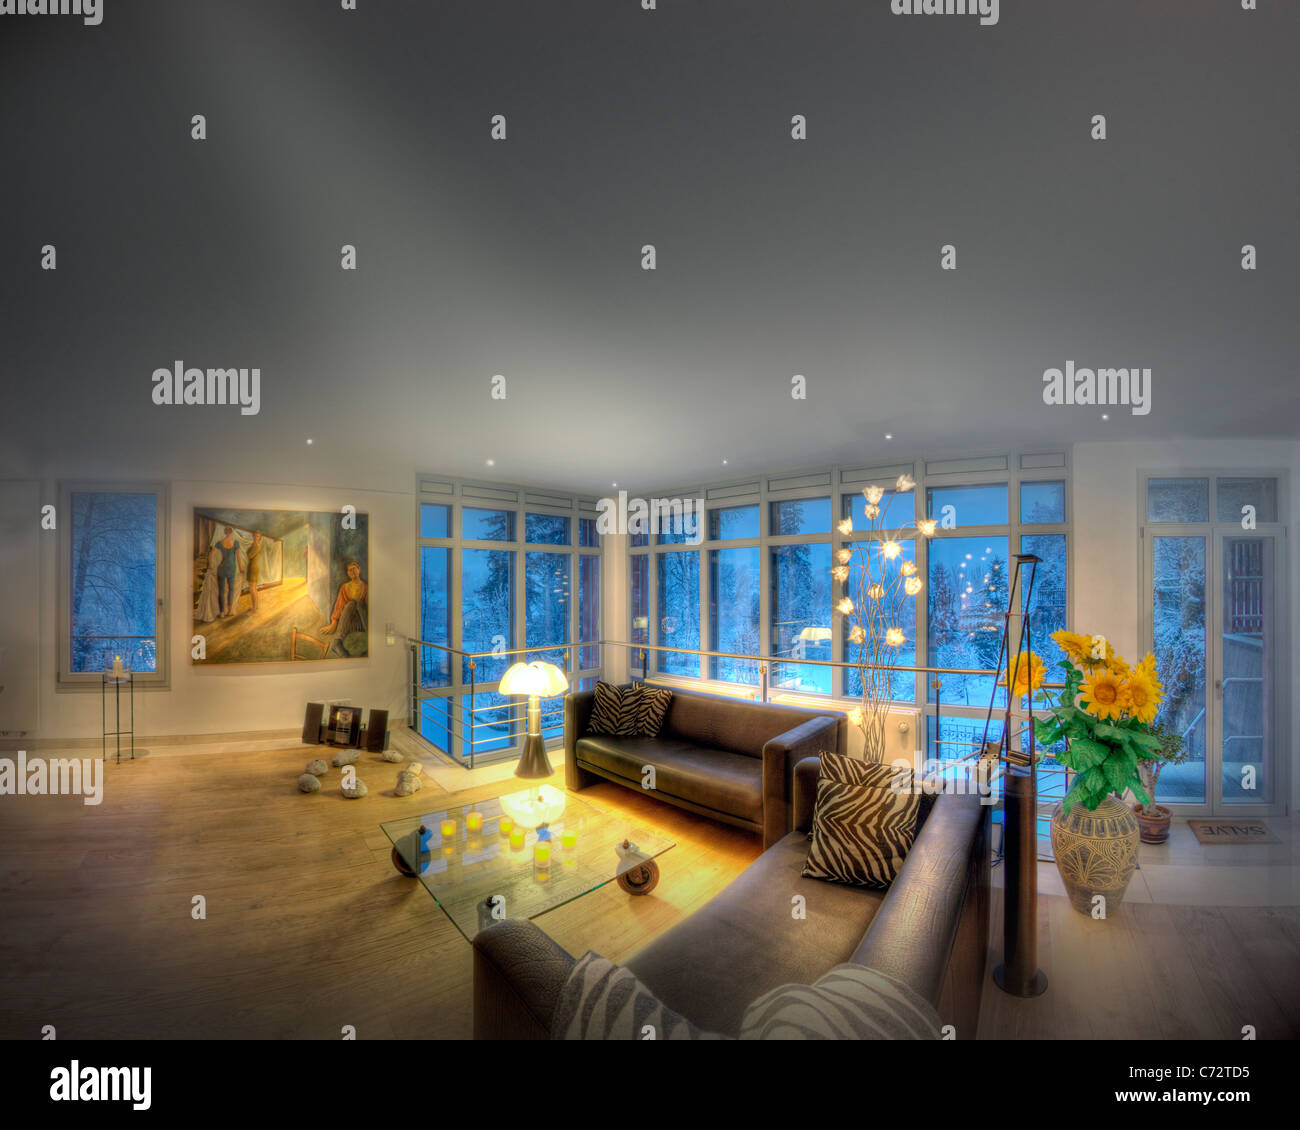 ARCHITECTURE: Contemporary Living Room setting (Germany/Bad Toelz) - Stock Image